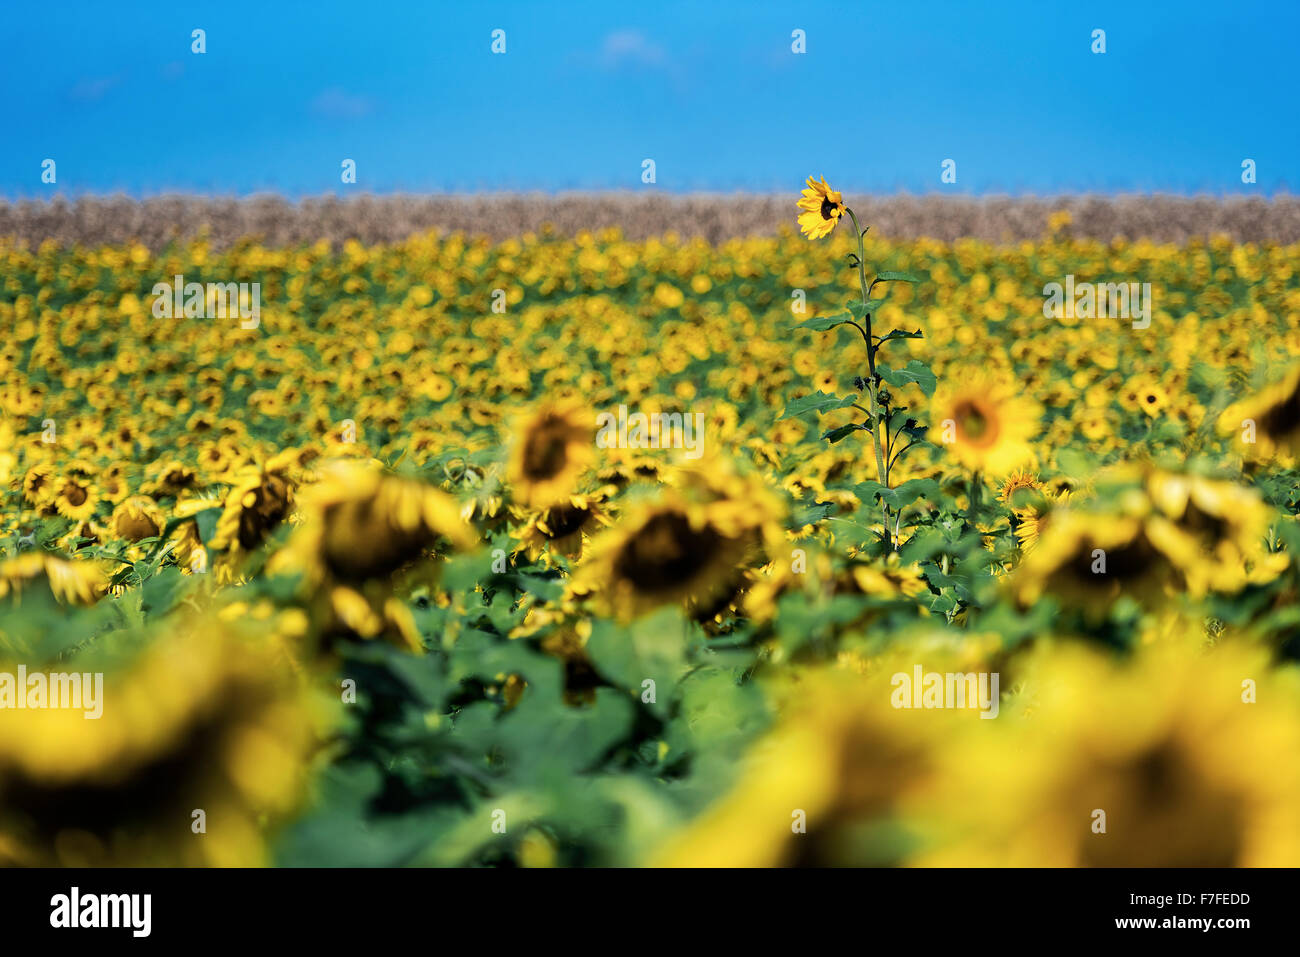 Uniquely tall sunflower in a field of sunflowers, Howard, Pennsylvania, USA - Stock Image